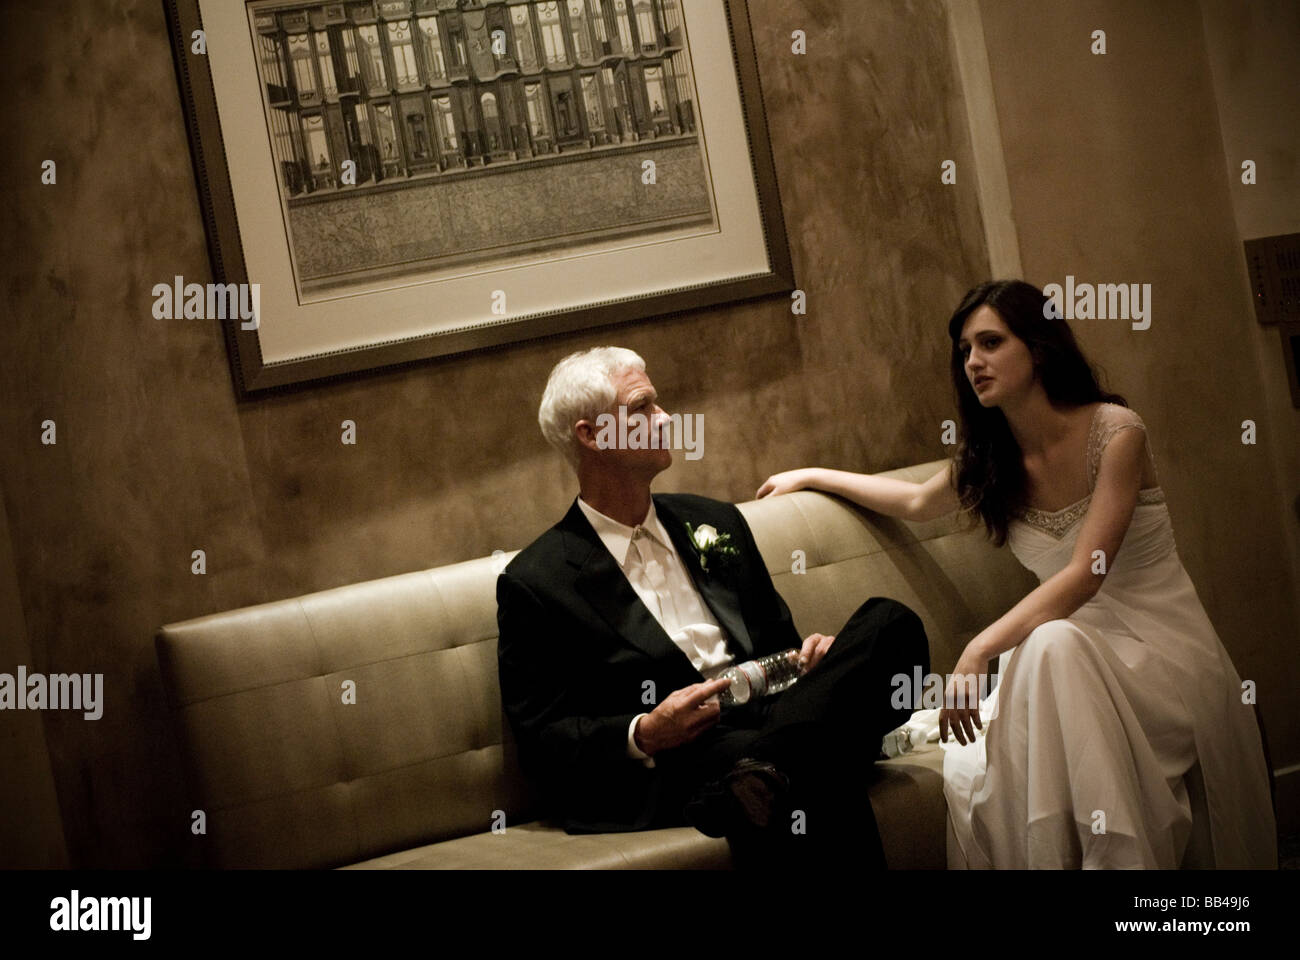 A debutante and her father relax on a couch in a hotel lobby in La Jolla, California. - Stock Image